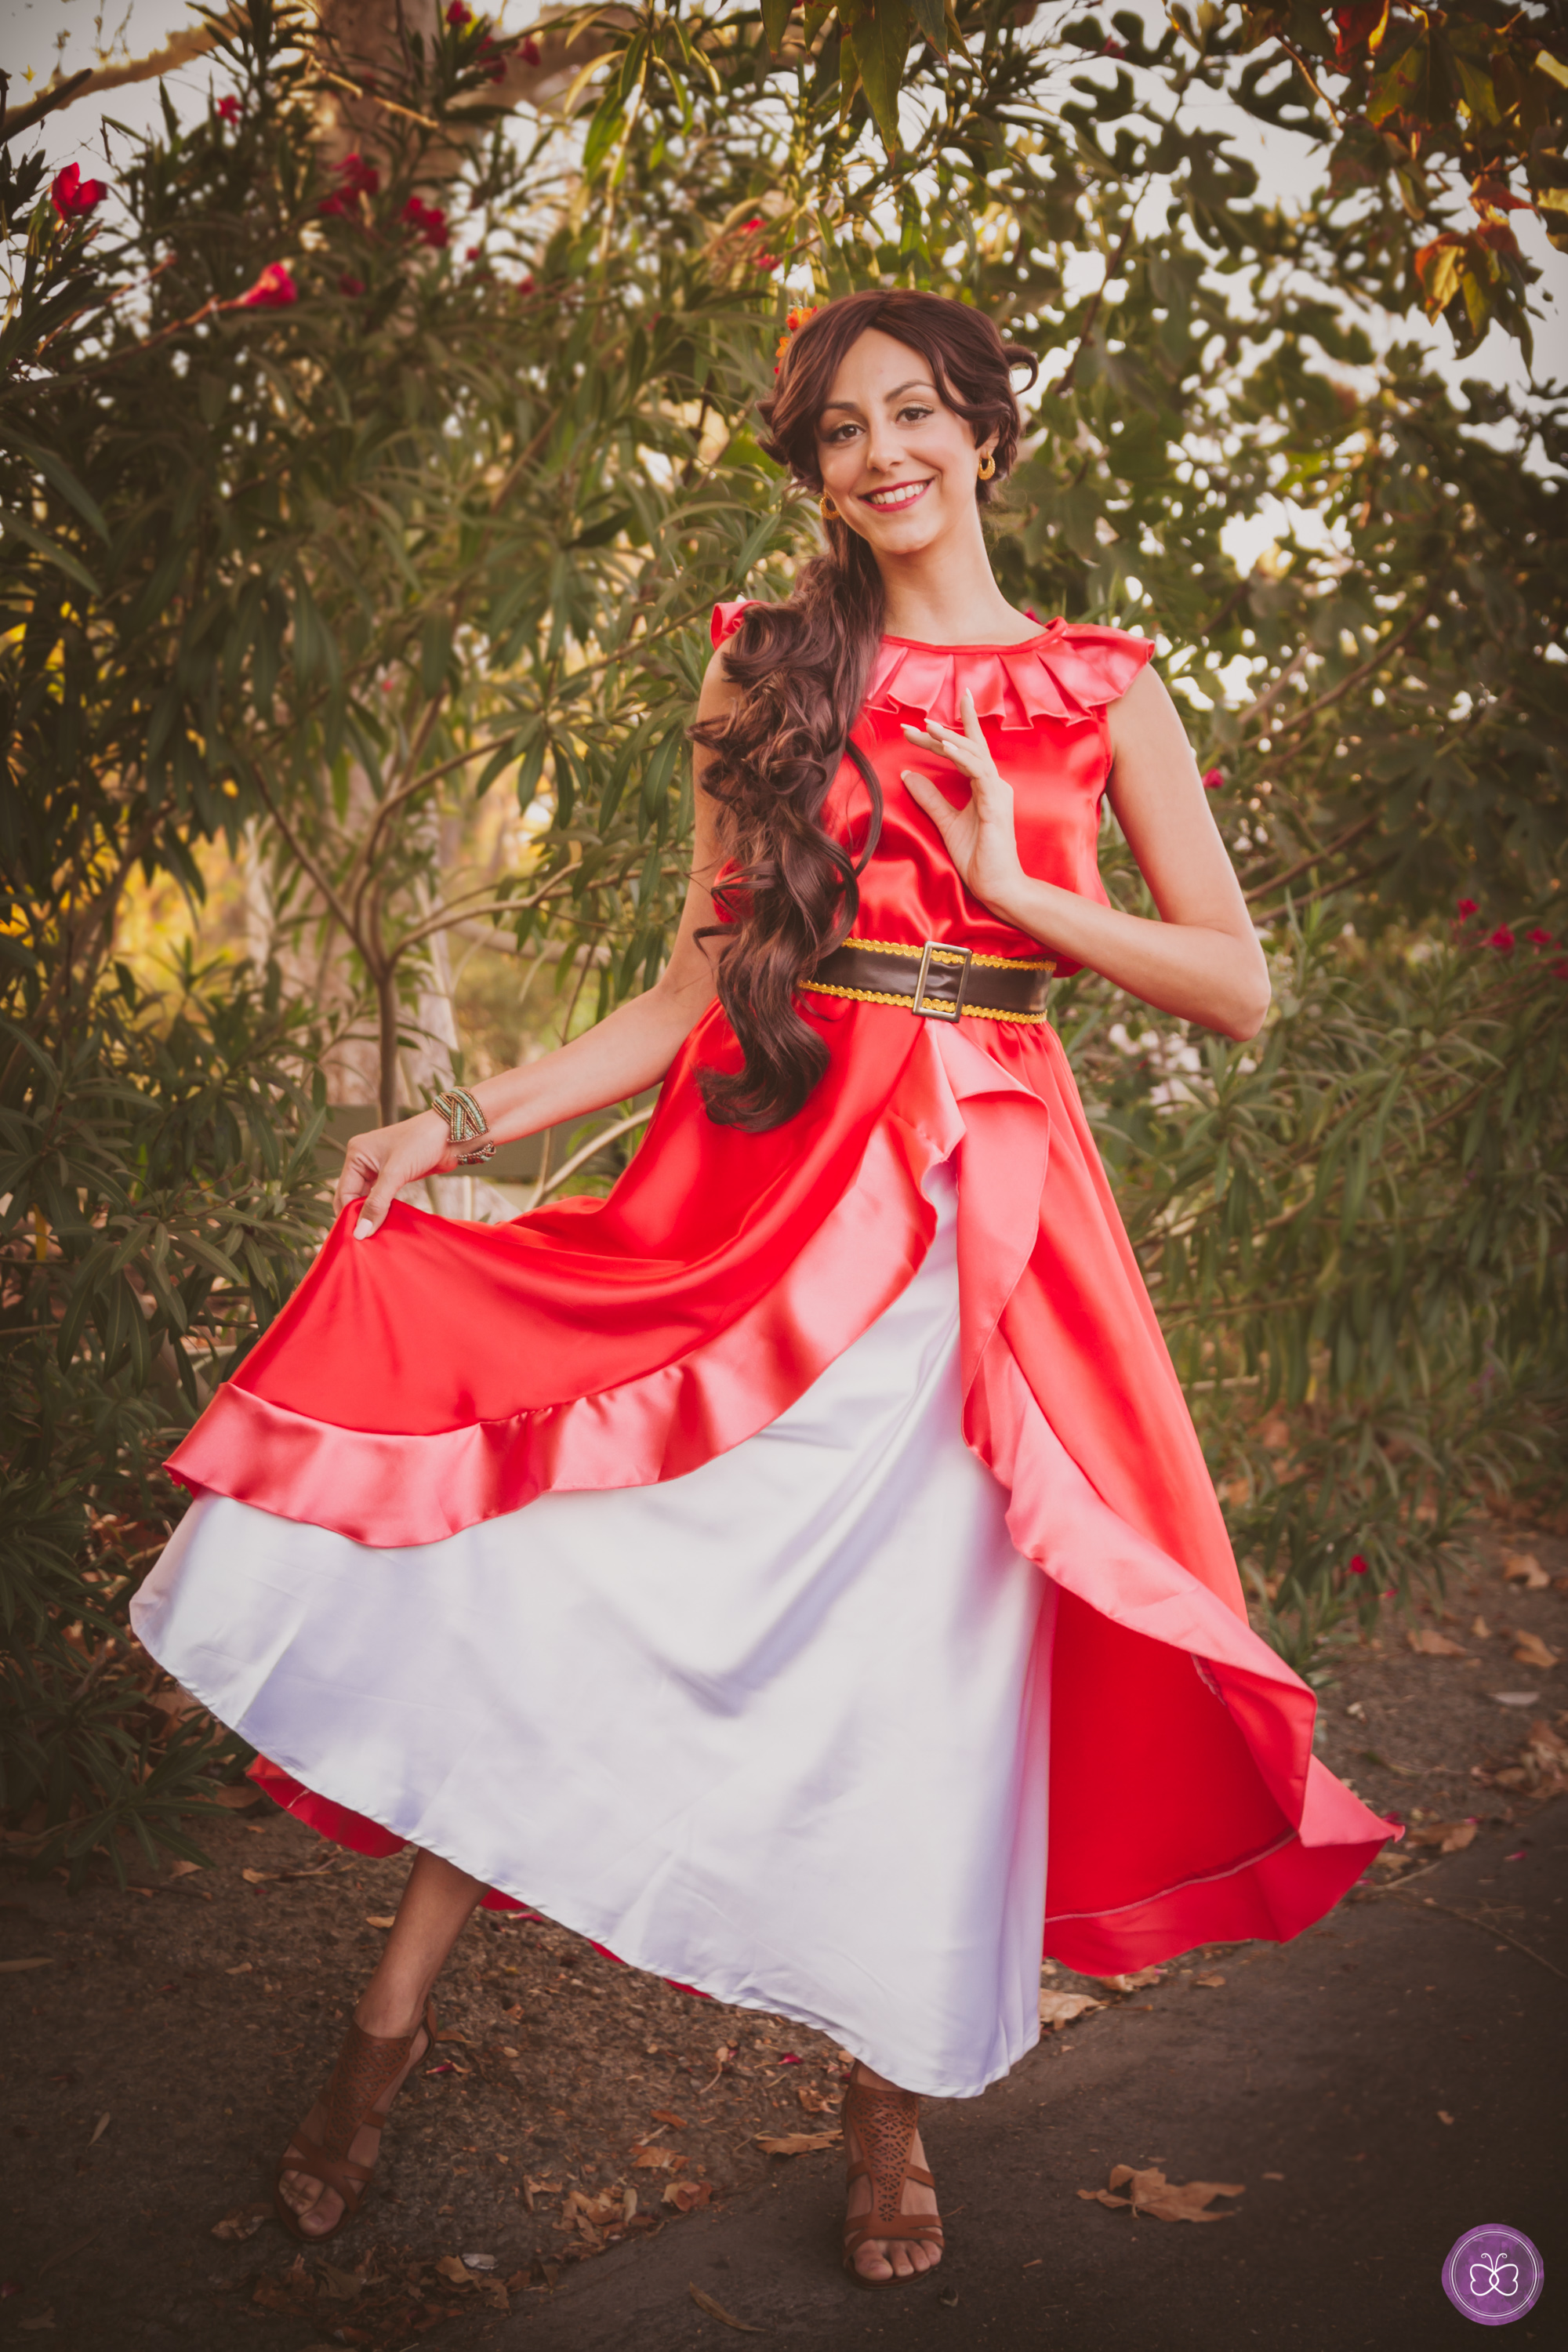 princess party elena of avalor los angeles (1 of 1).jpg